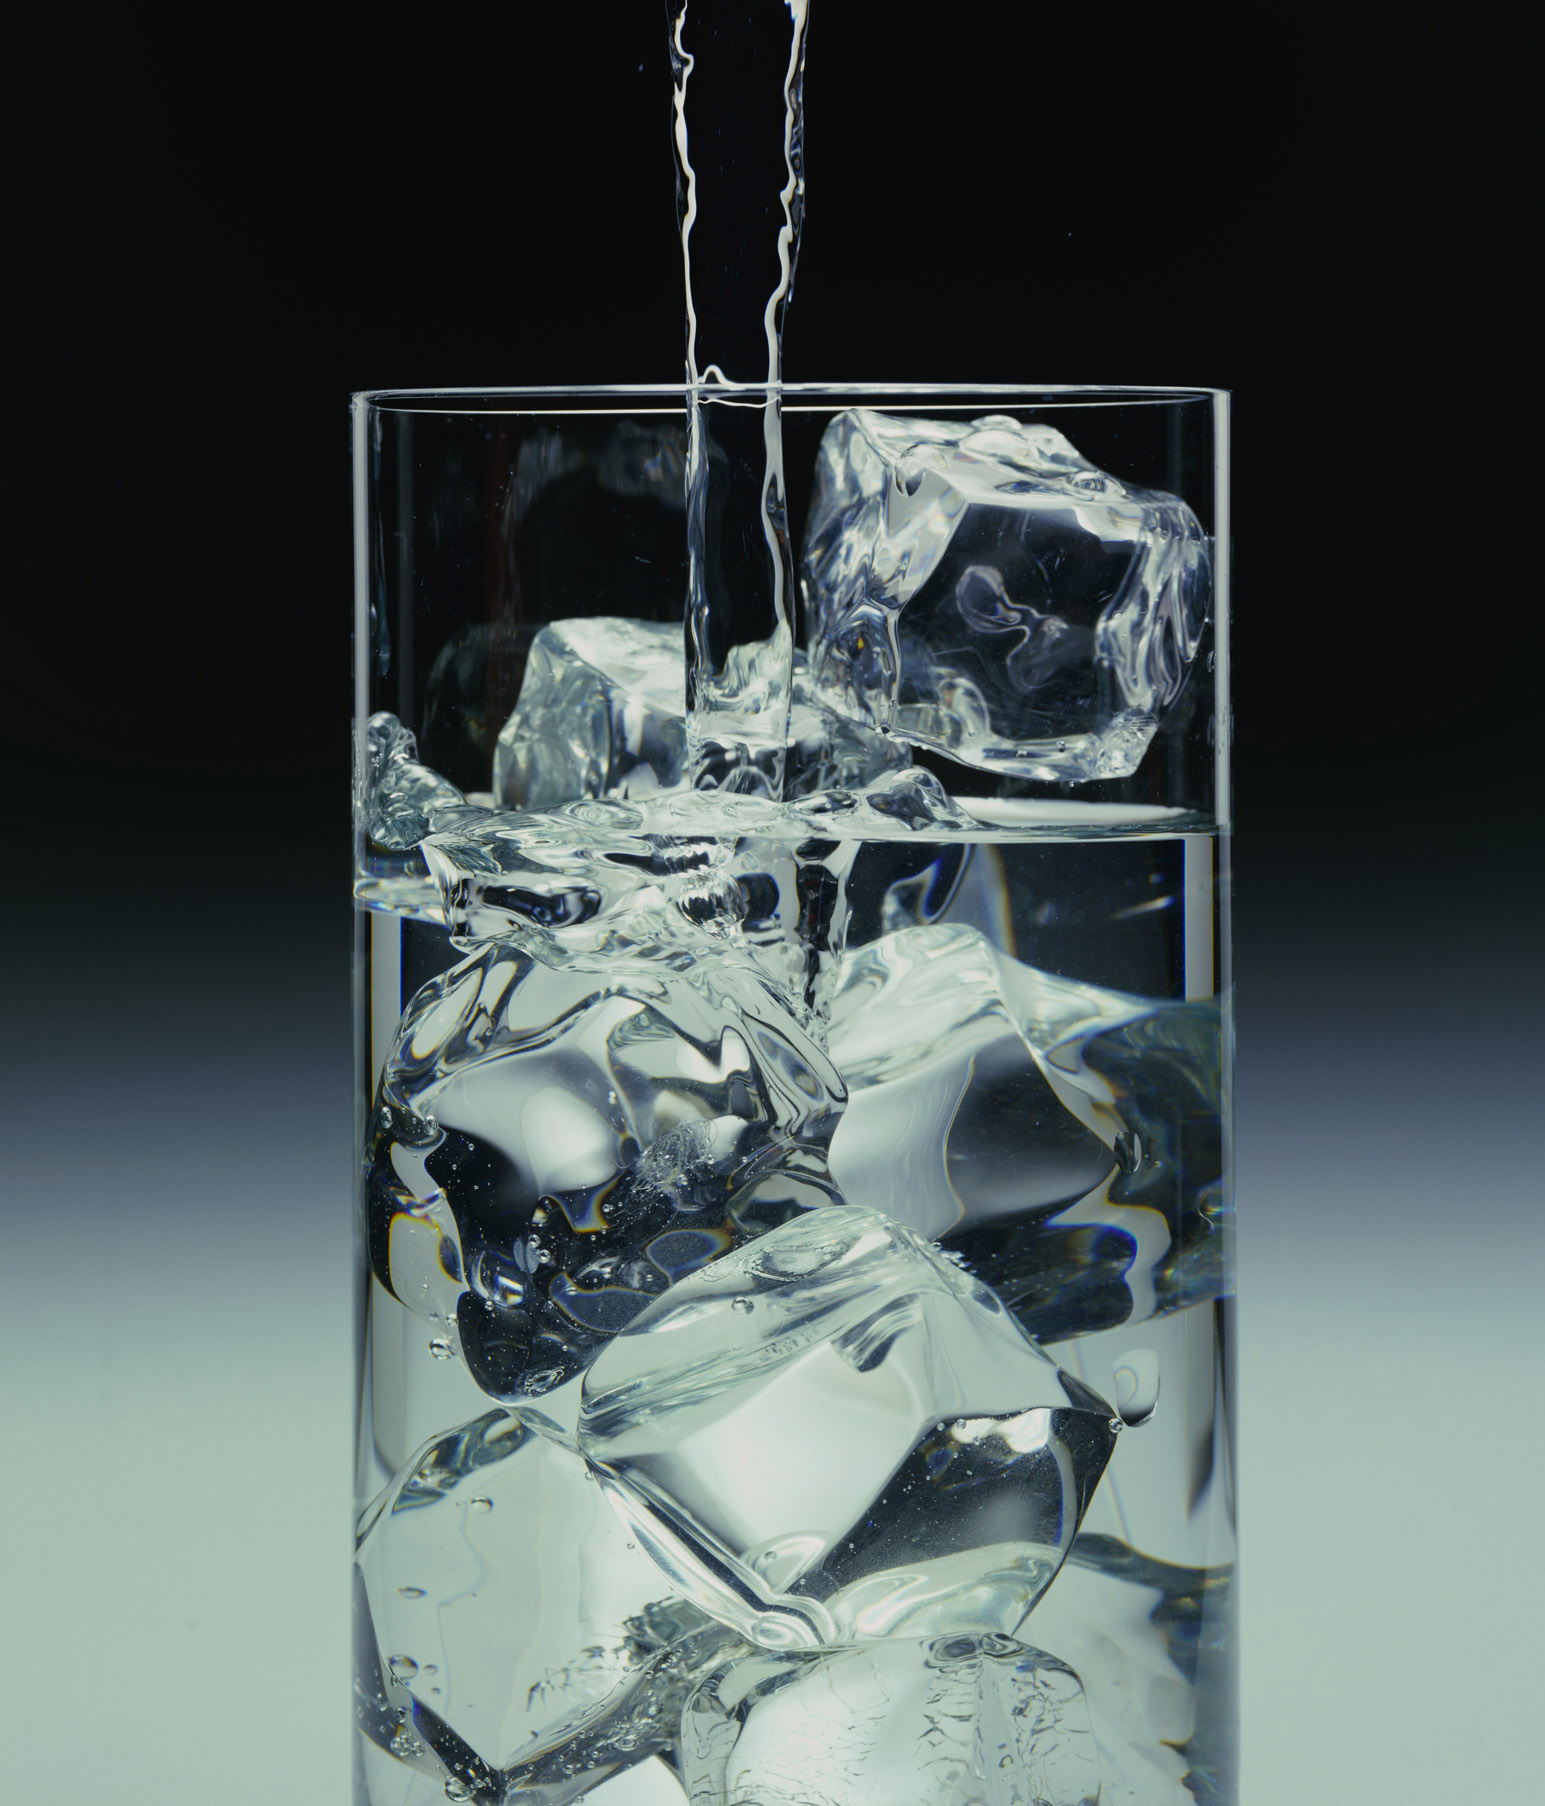 Water pouring into glass with ice